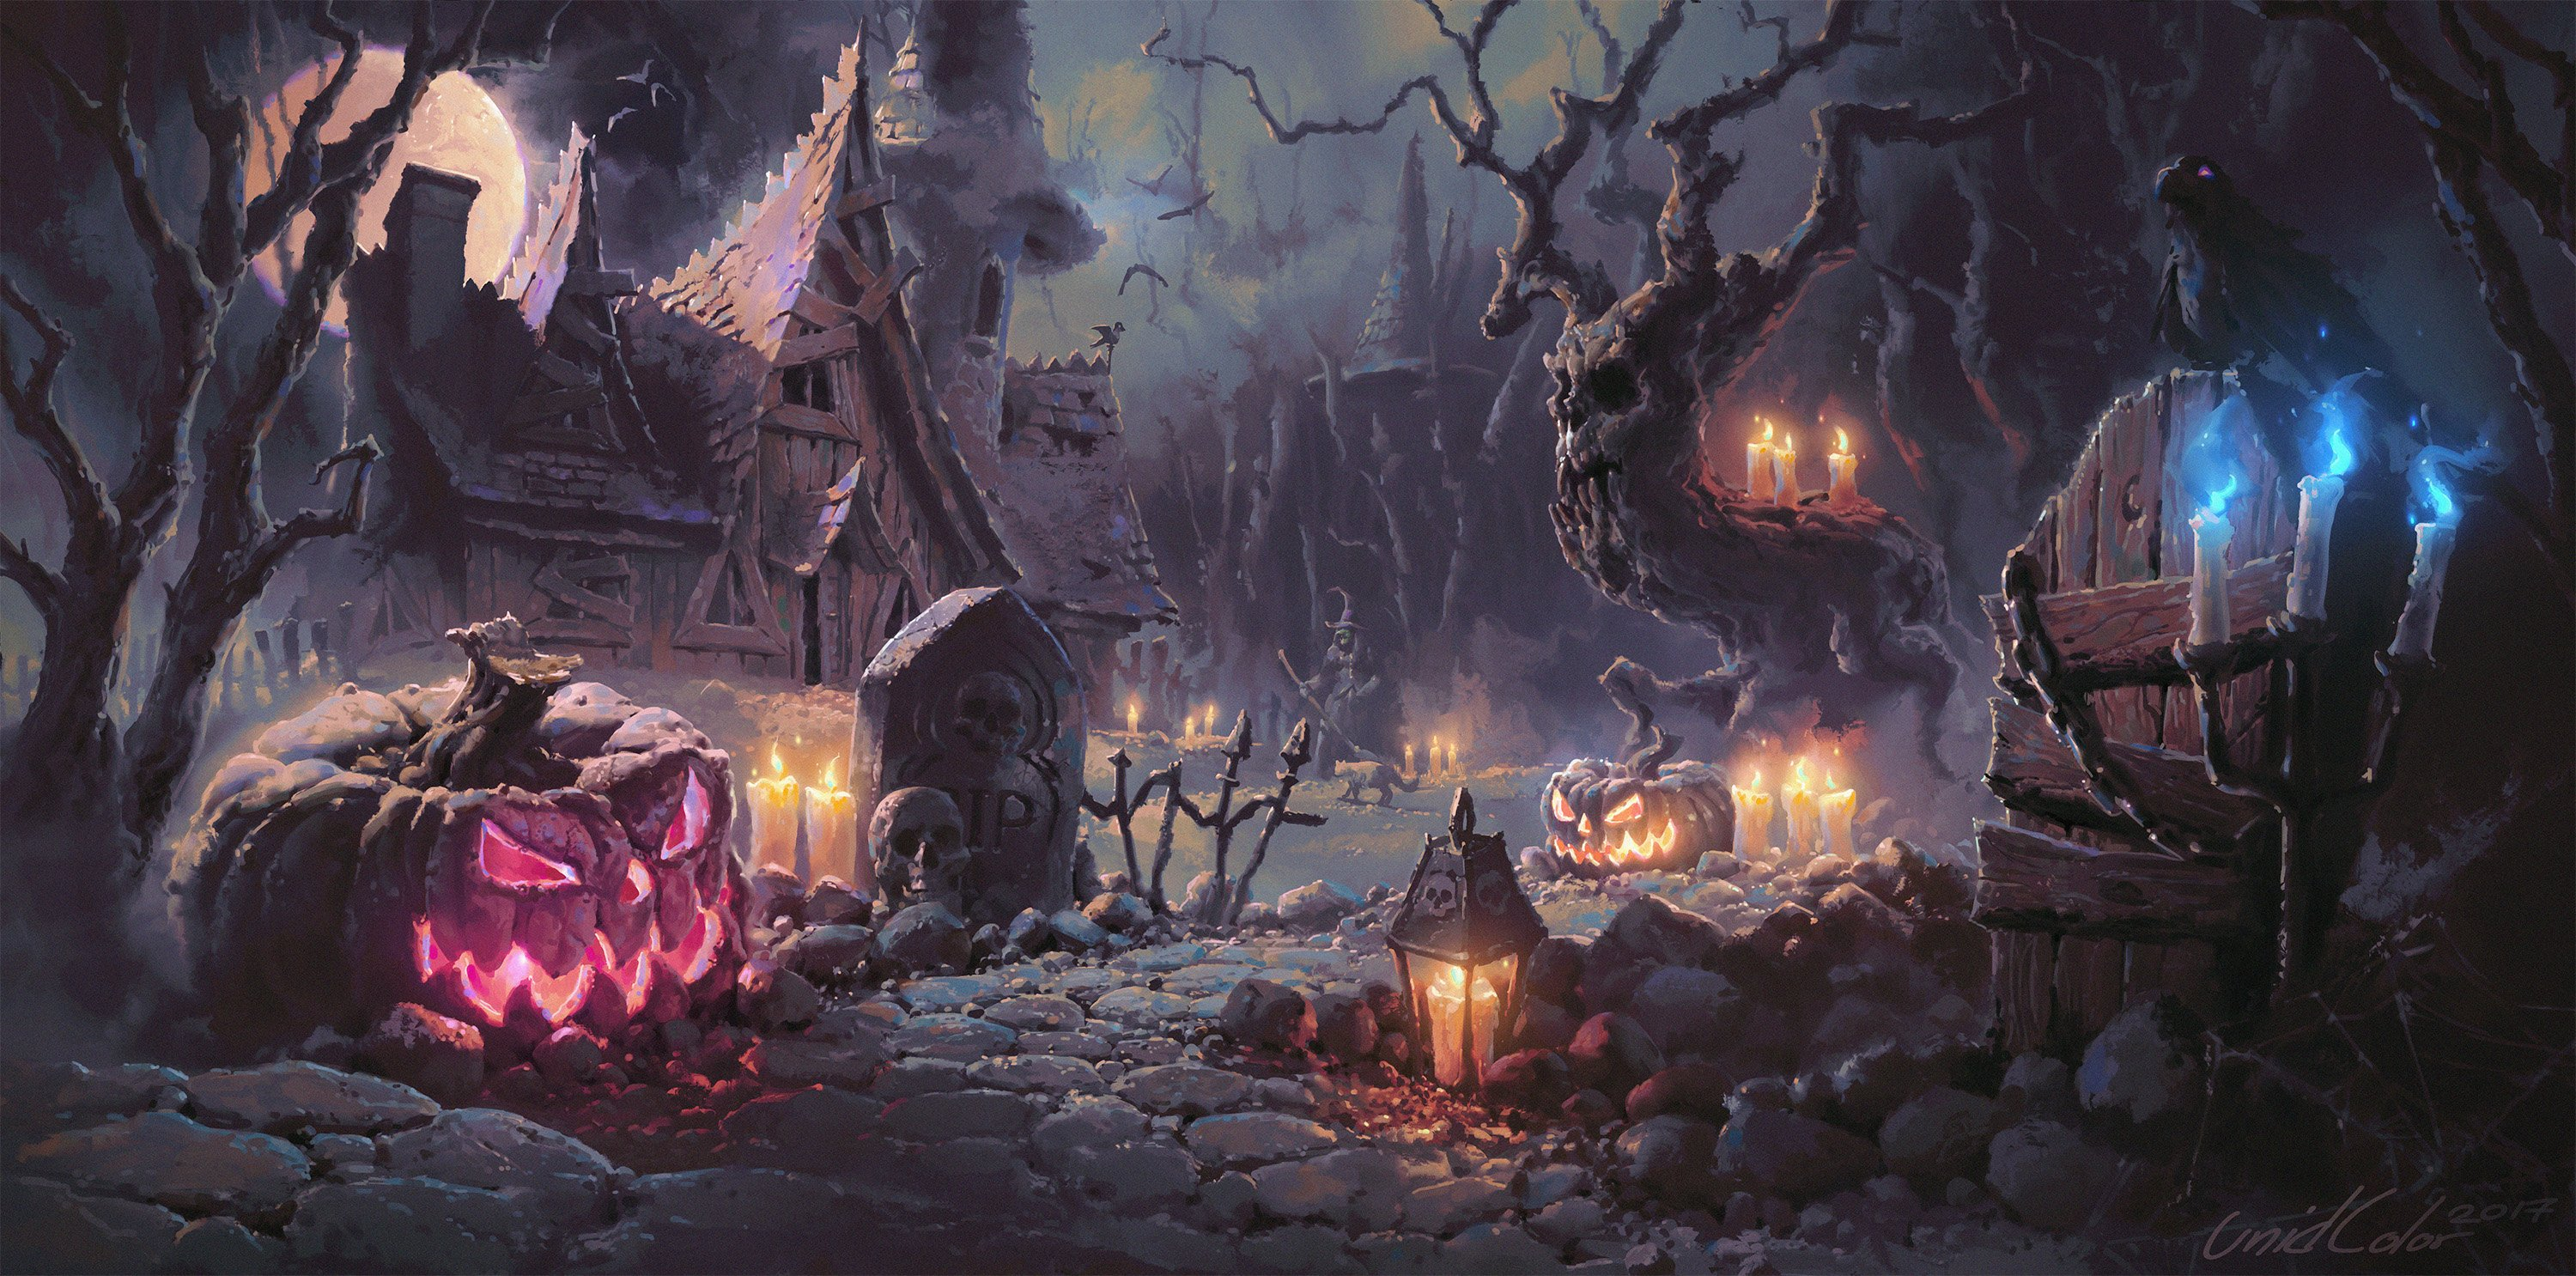 Halloween 4k Wallpapers For Your Desktop Or Mobile Screen Free And Easy To Download